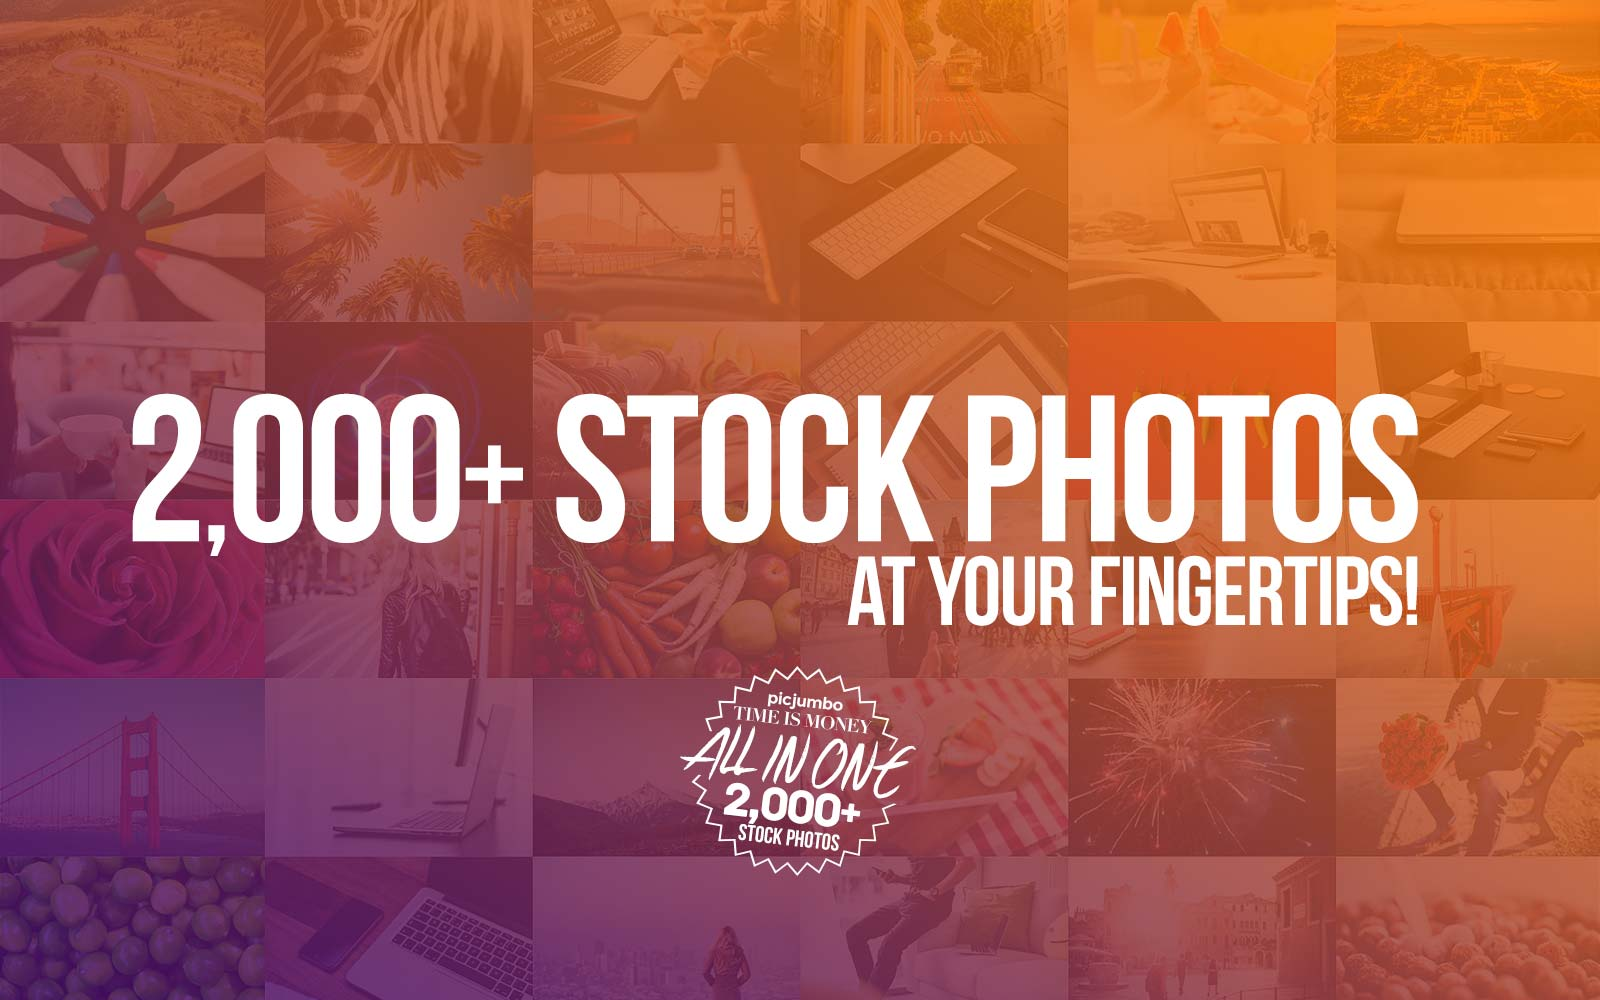 2,000+ Hi-Res Stock Photos at your fingertips! — picjumbo BLOG